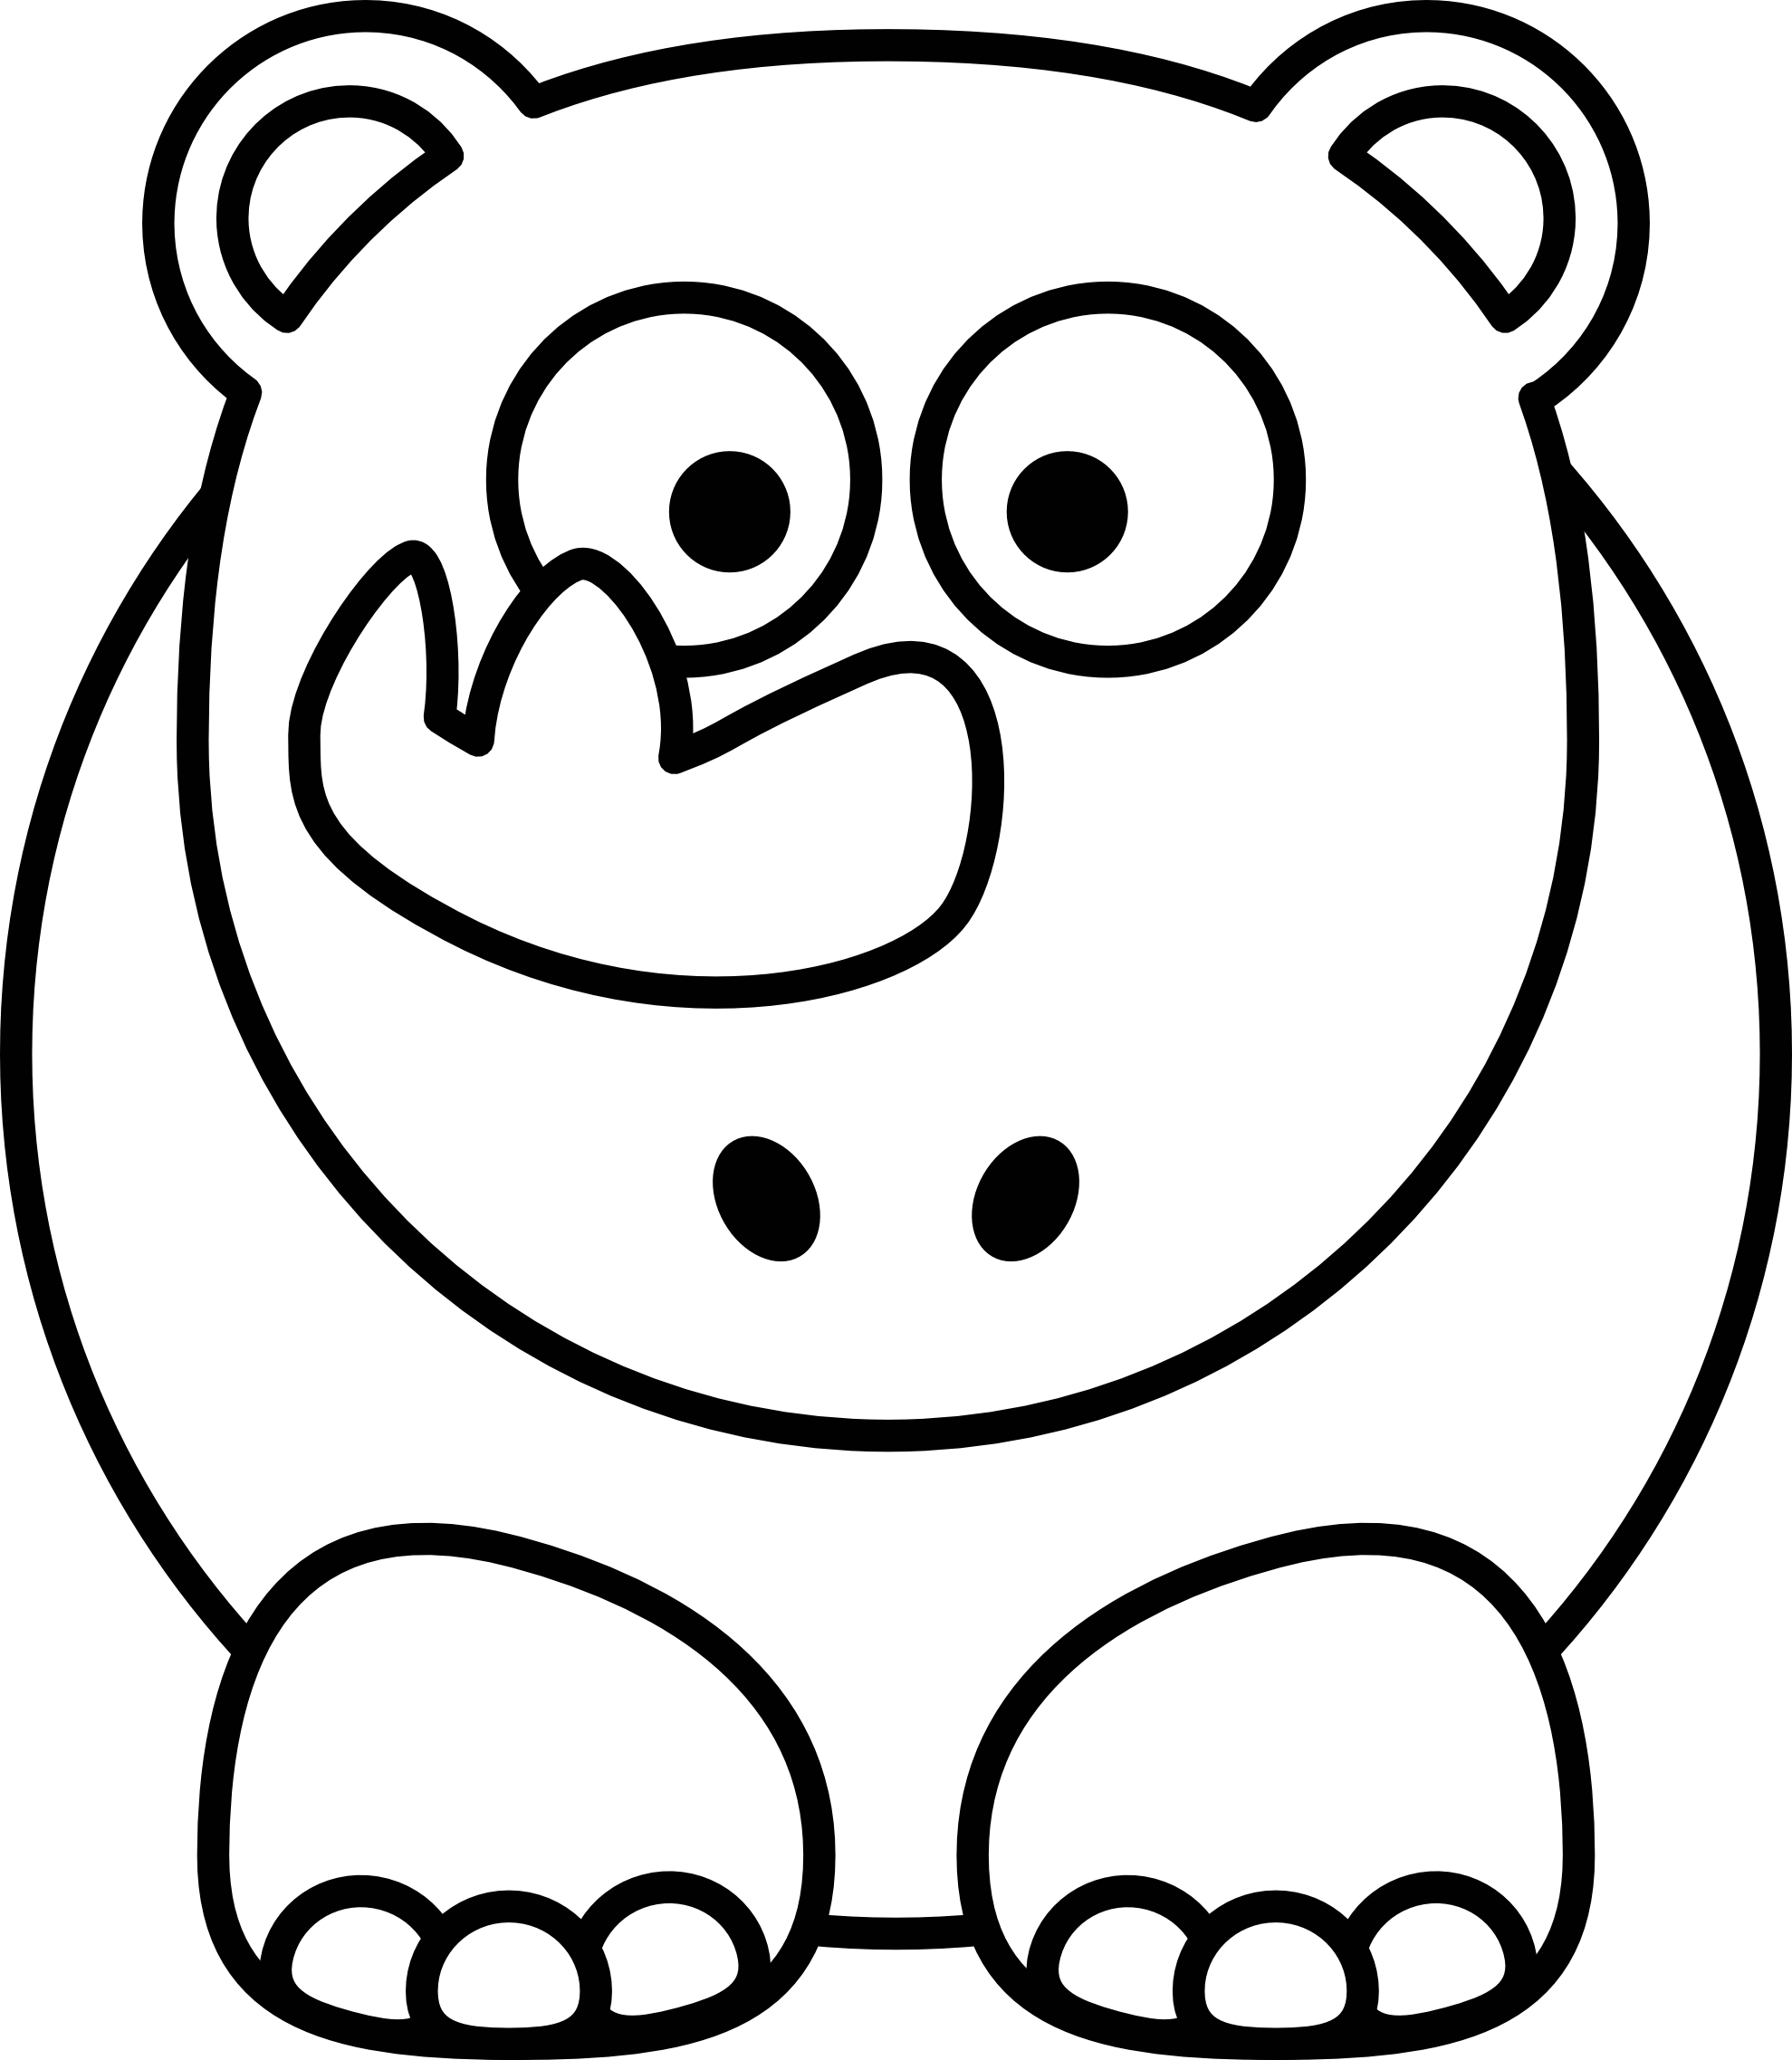 Rhino clipart coloring page #1